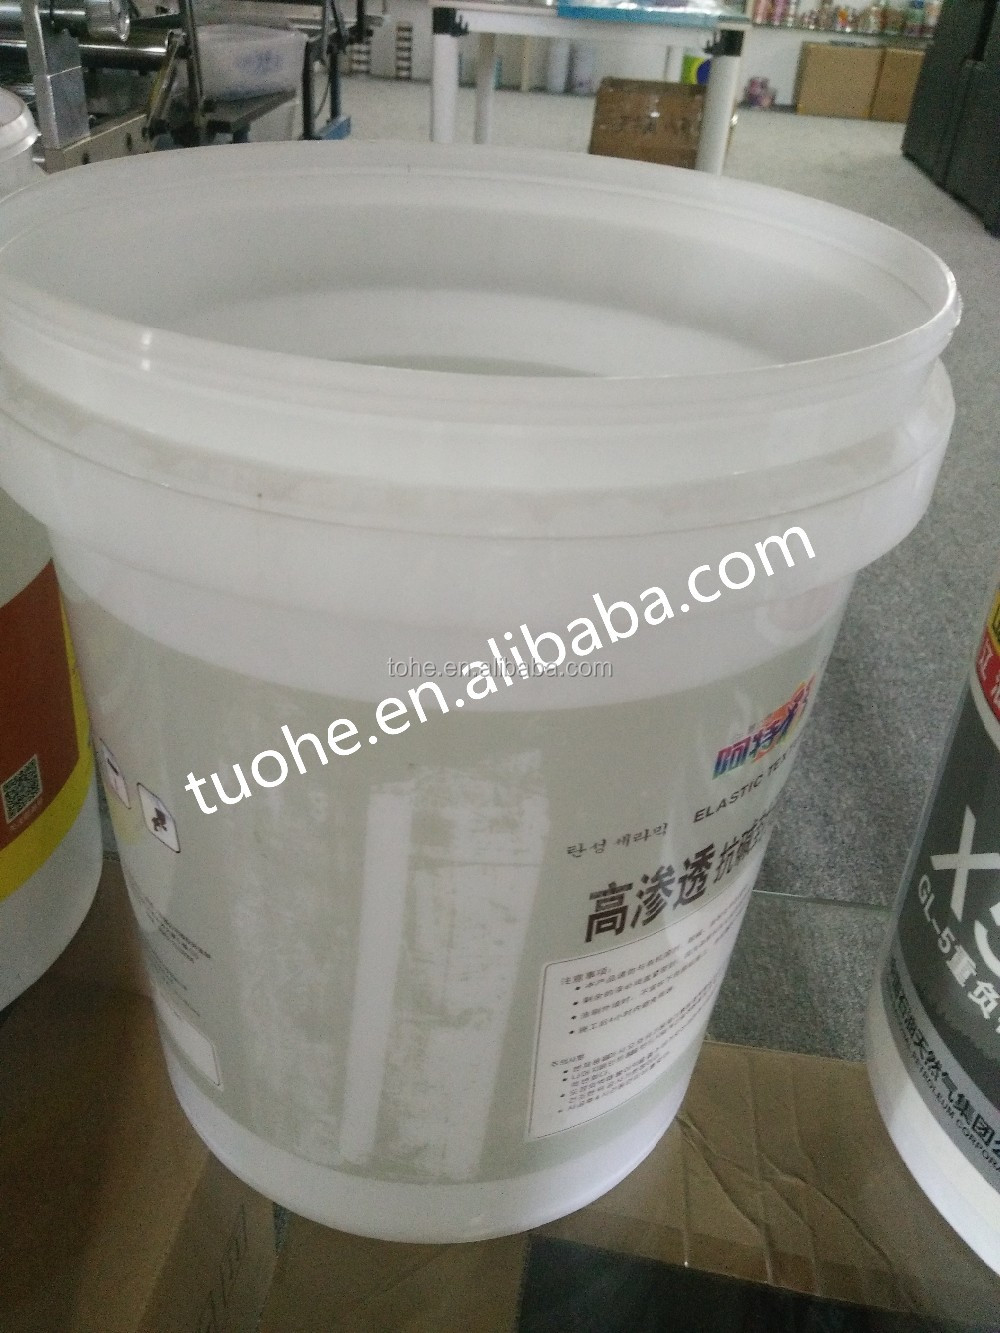 Alibaba slipper in guiyang china professional film CBRL in good price produce heat transfer film for plastic coating color tank